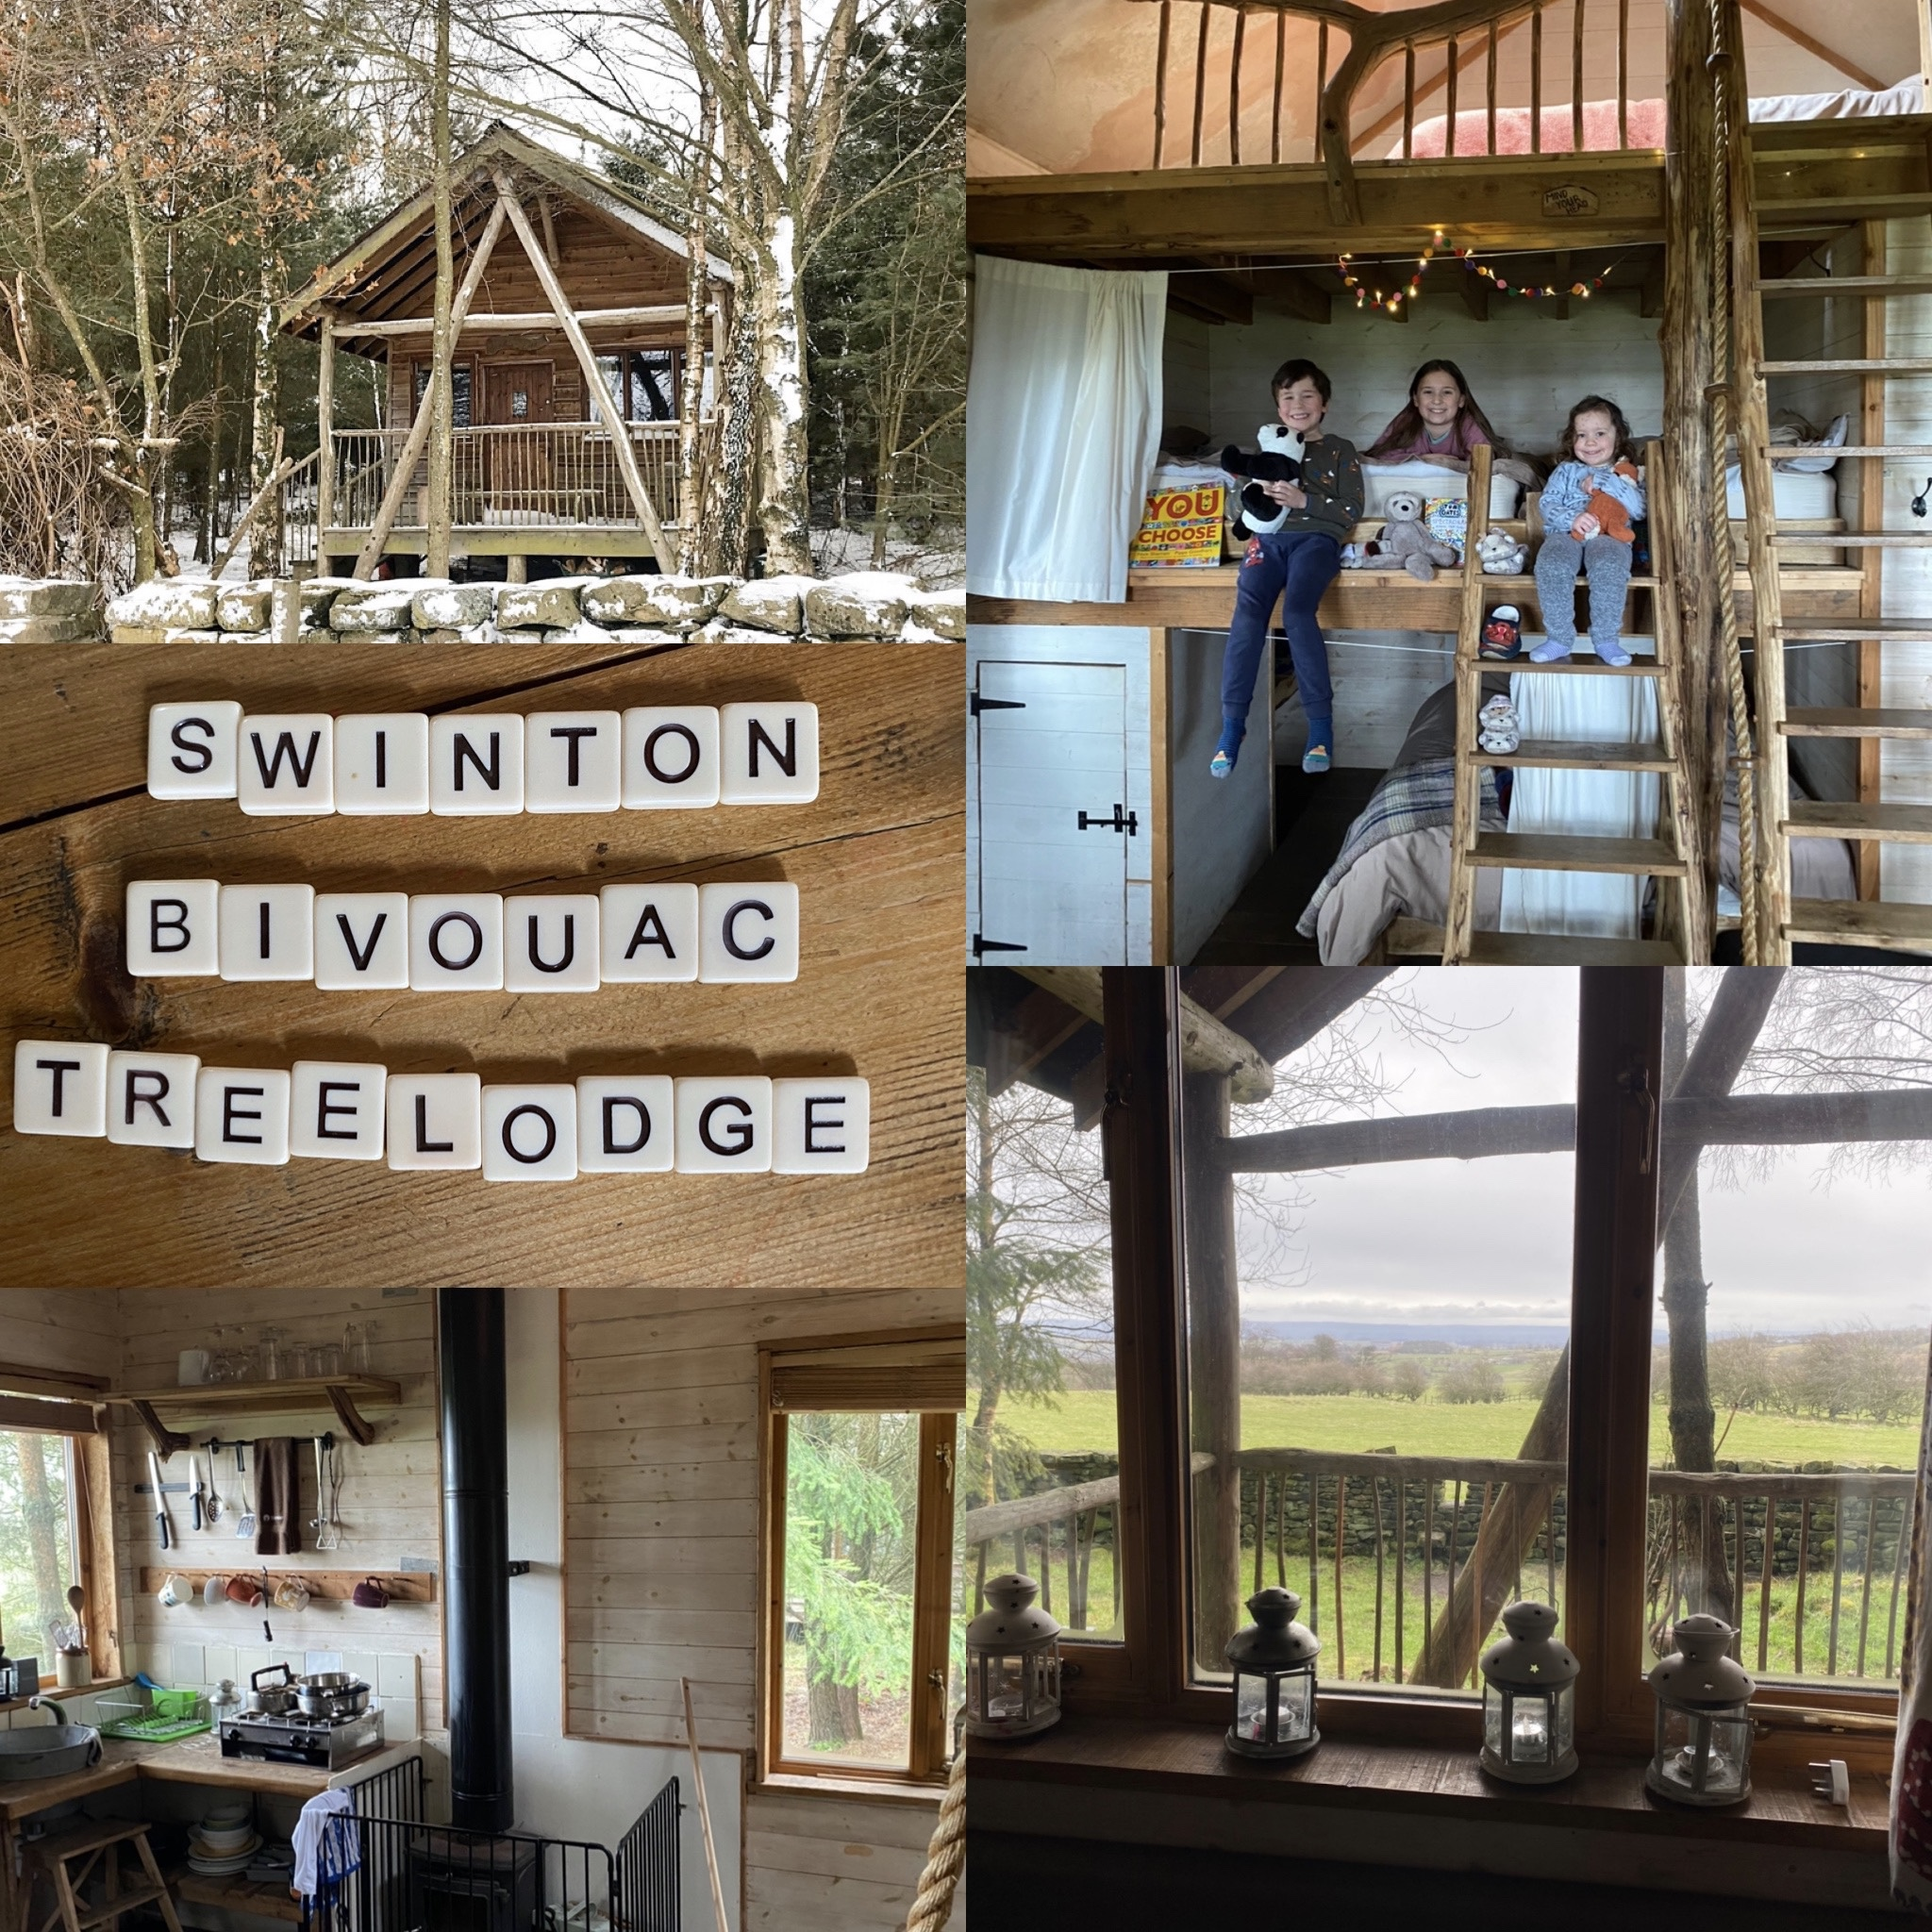 Swinton Bivouac tree lodge review with photos of inside and outside the lodge